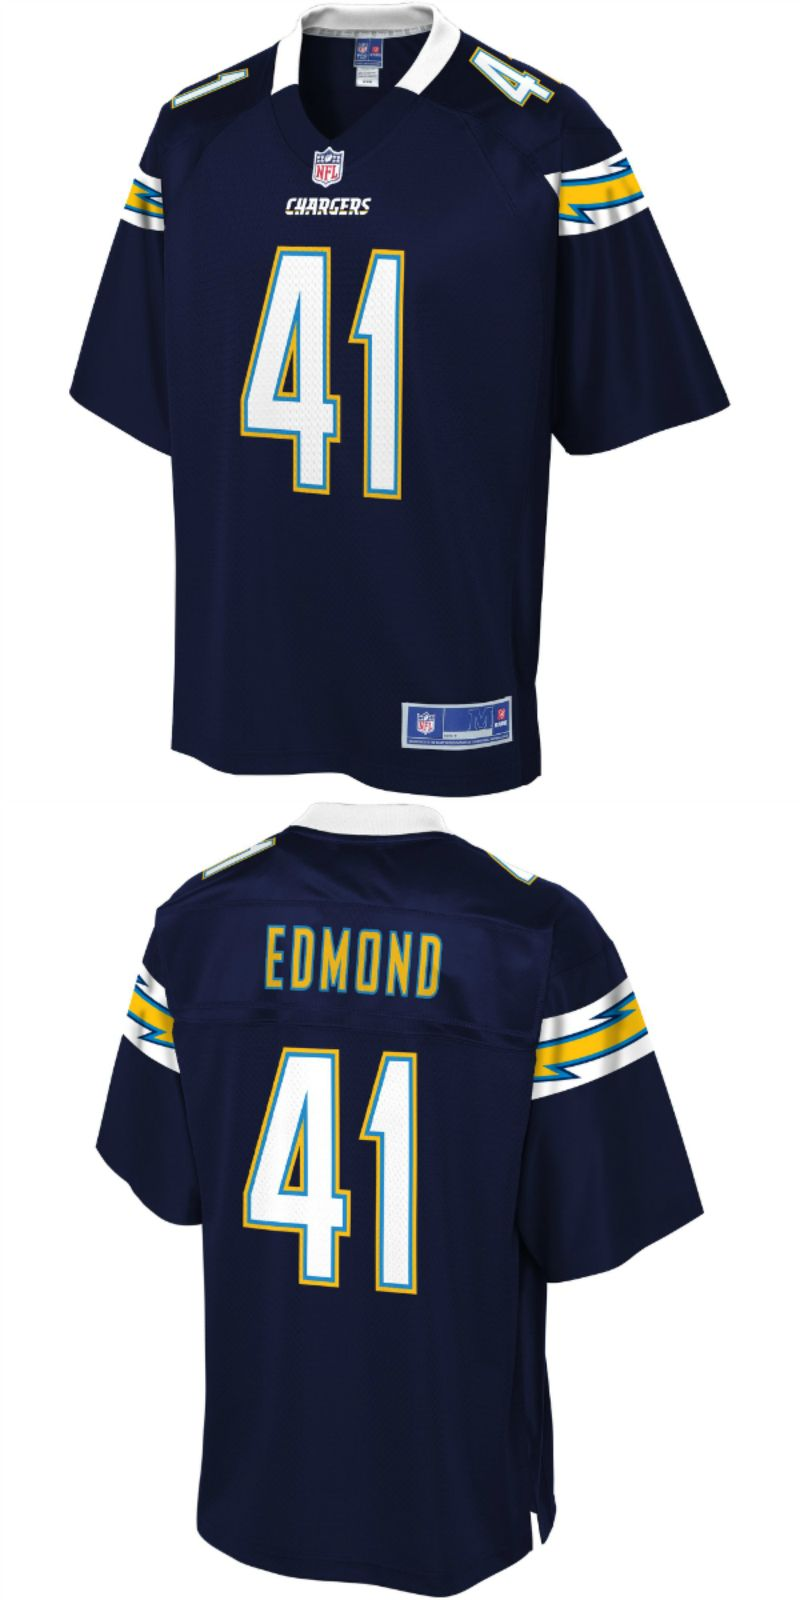 Up To 70 Off Marcus Edmond Los Angeles Chargers Nfl Pro Line Player Jersey Navy Jpg Los Angeles Charg Chargers Football Los Angeles Chargers Football Shirts